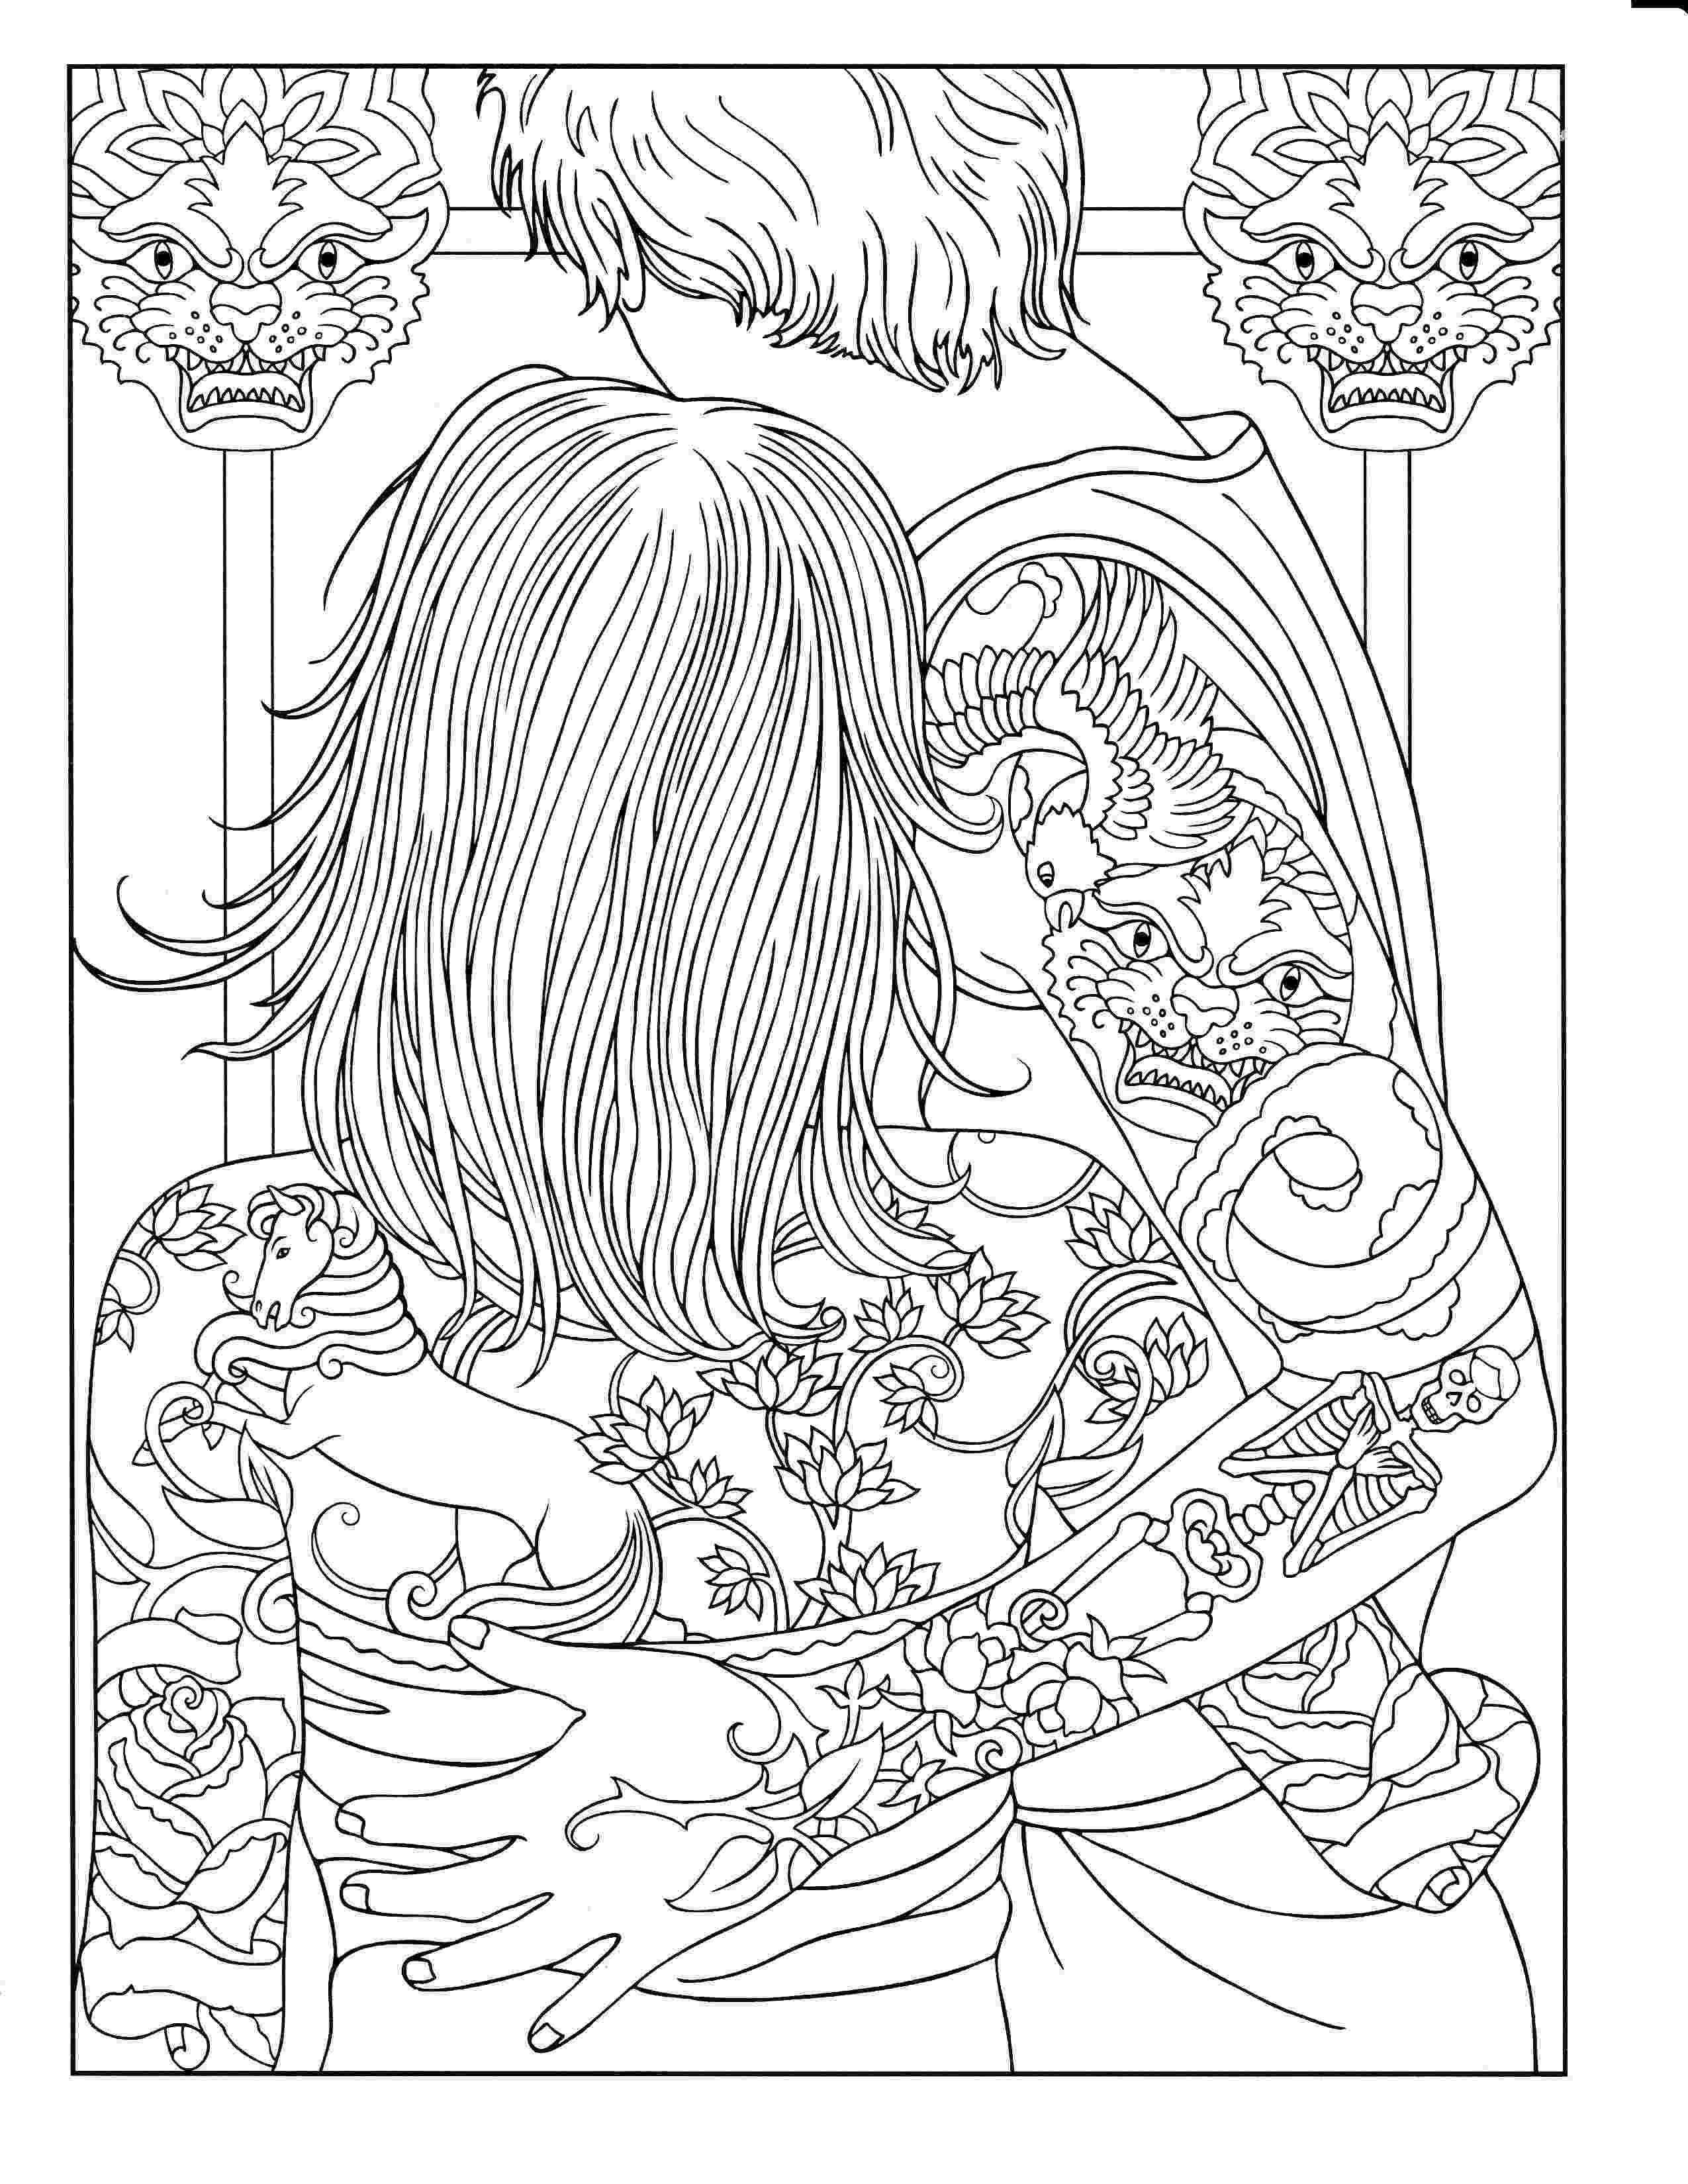 body art coloring book 17 best images about body art coloring pages on pinterest body coloring book art